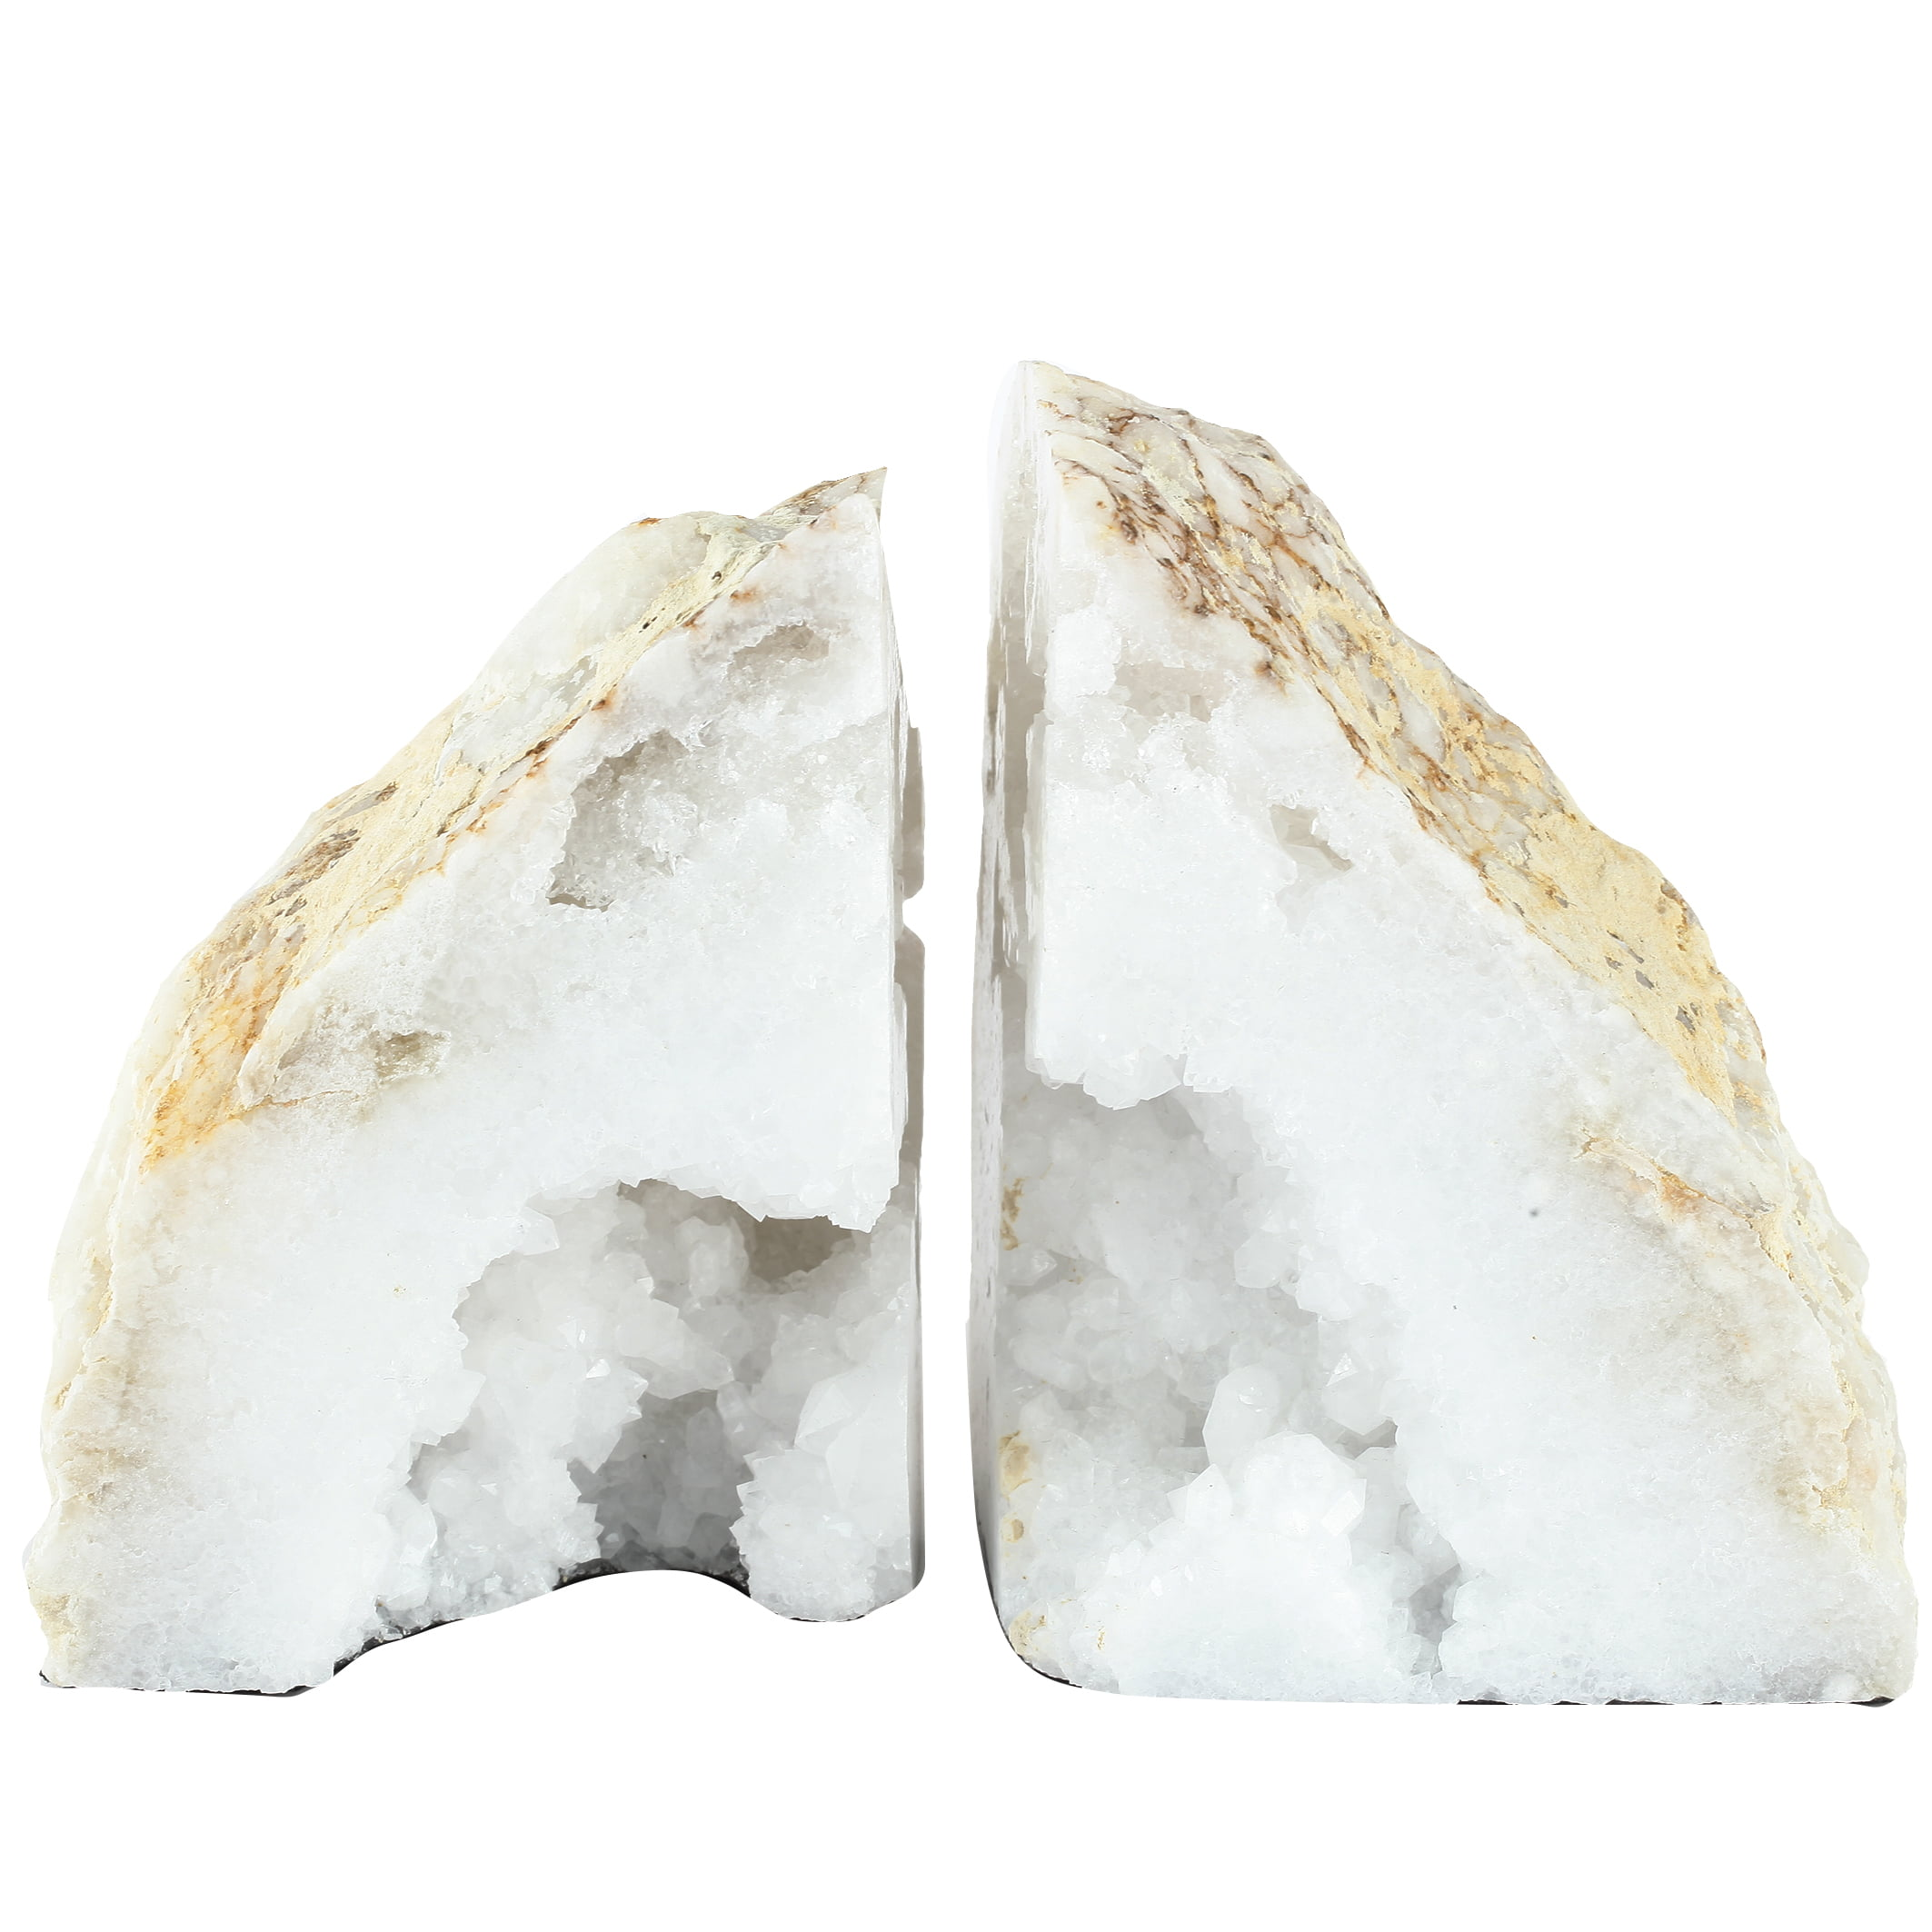 A&B Home Natural Geode Bookends, Set of 2 by A&B Home